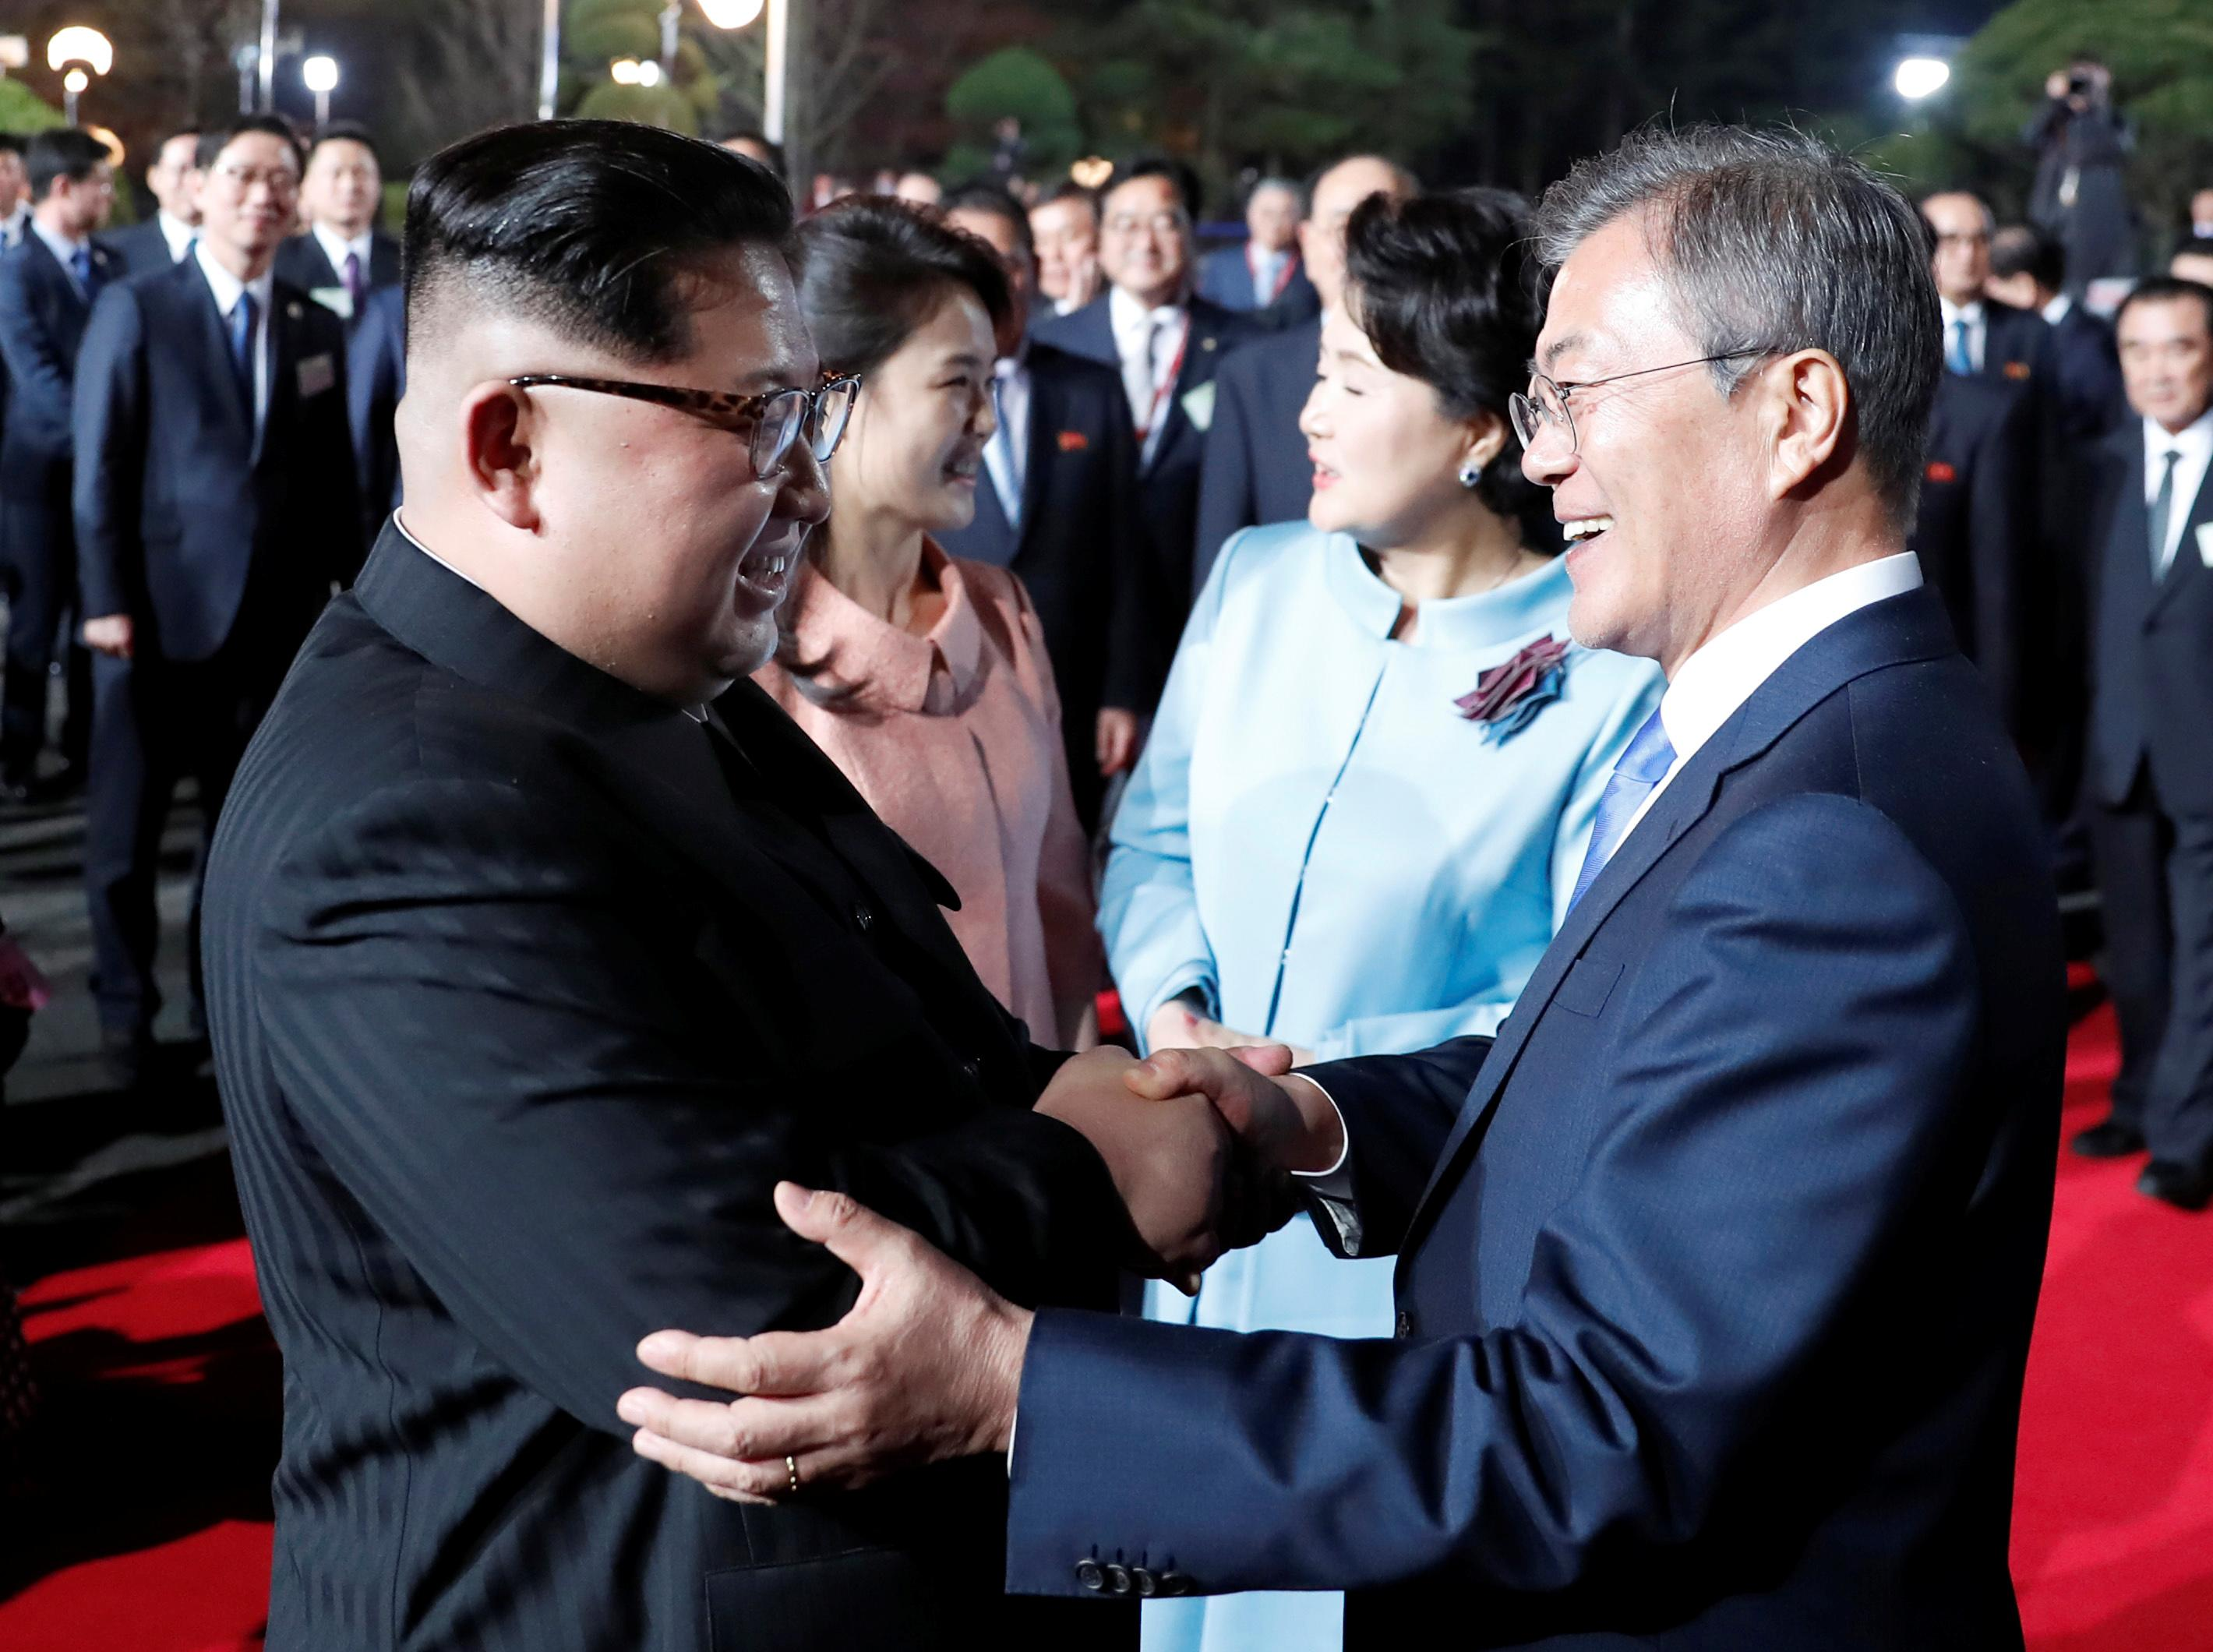 <p>South Korean President Moon Jae-in, North Korean leader Kim Jong Un, Kim's wife Ri Sol Ju and Moon's wife Kim Jung-sook attend a farewell ceremony at the truce village of Panmunjom inside the demilitarized zone separating the two Koreas, South Korea, April 27, 2018. (Photo: Korea Summit Press Pool/Pool via Reuters) </p>